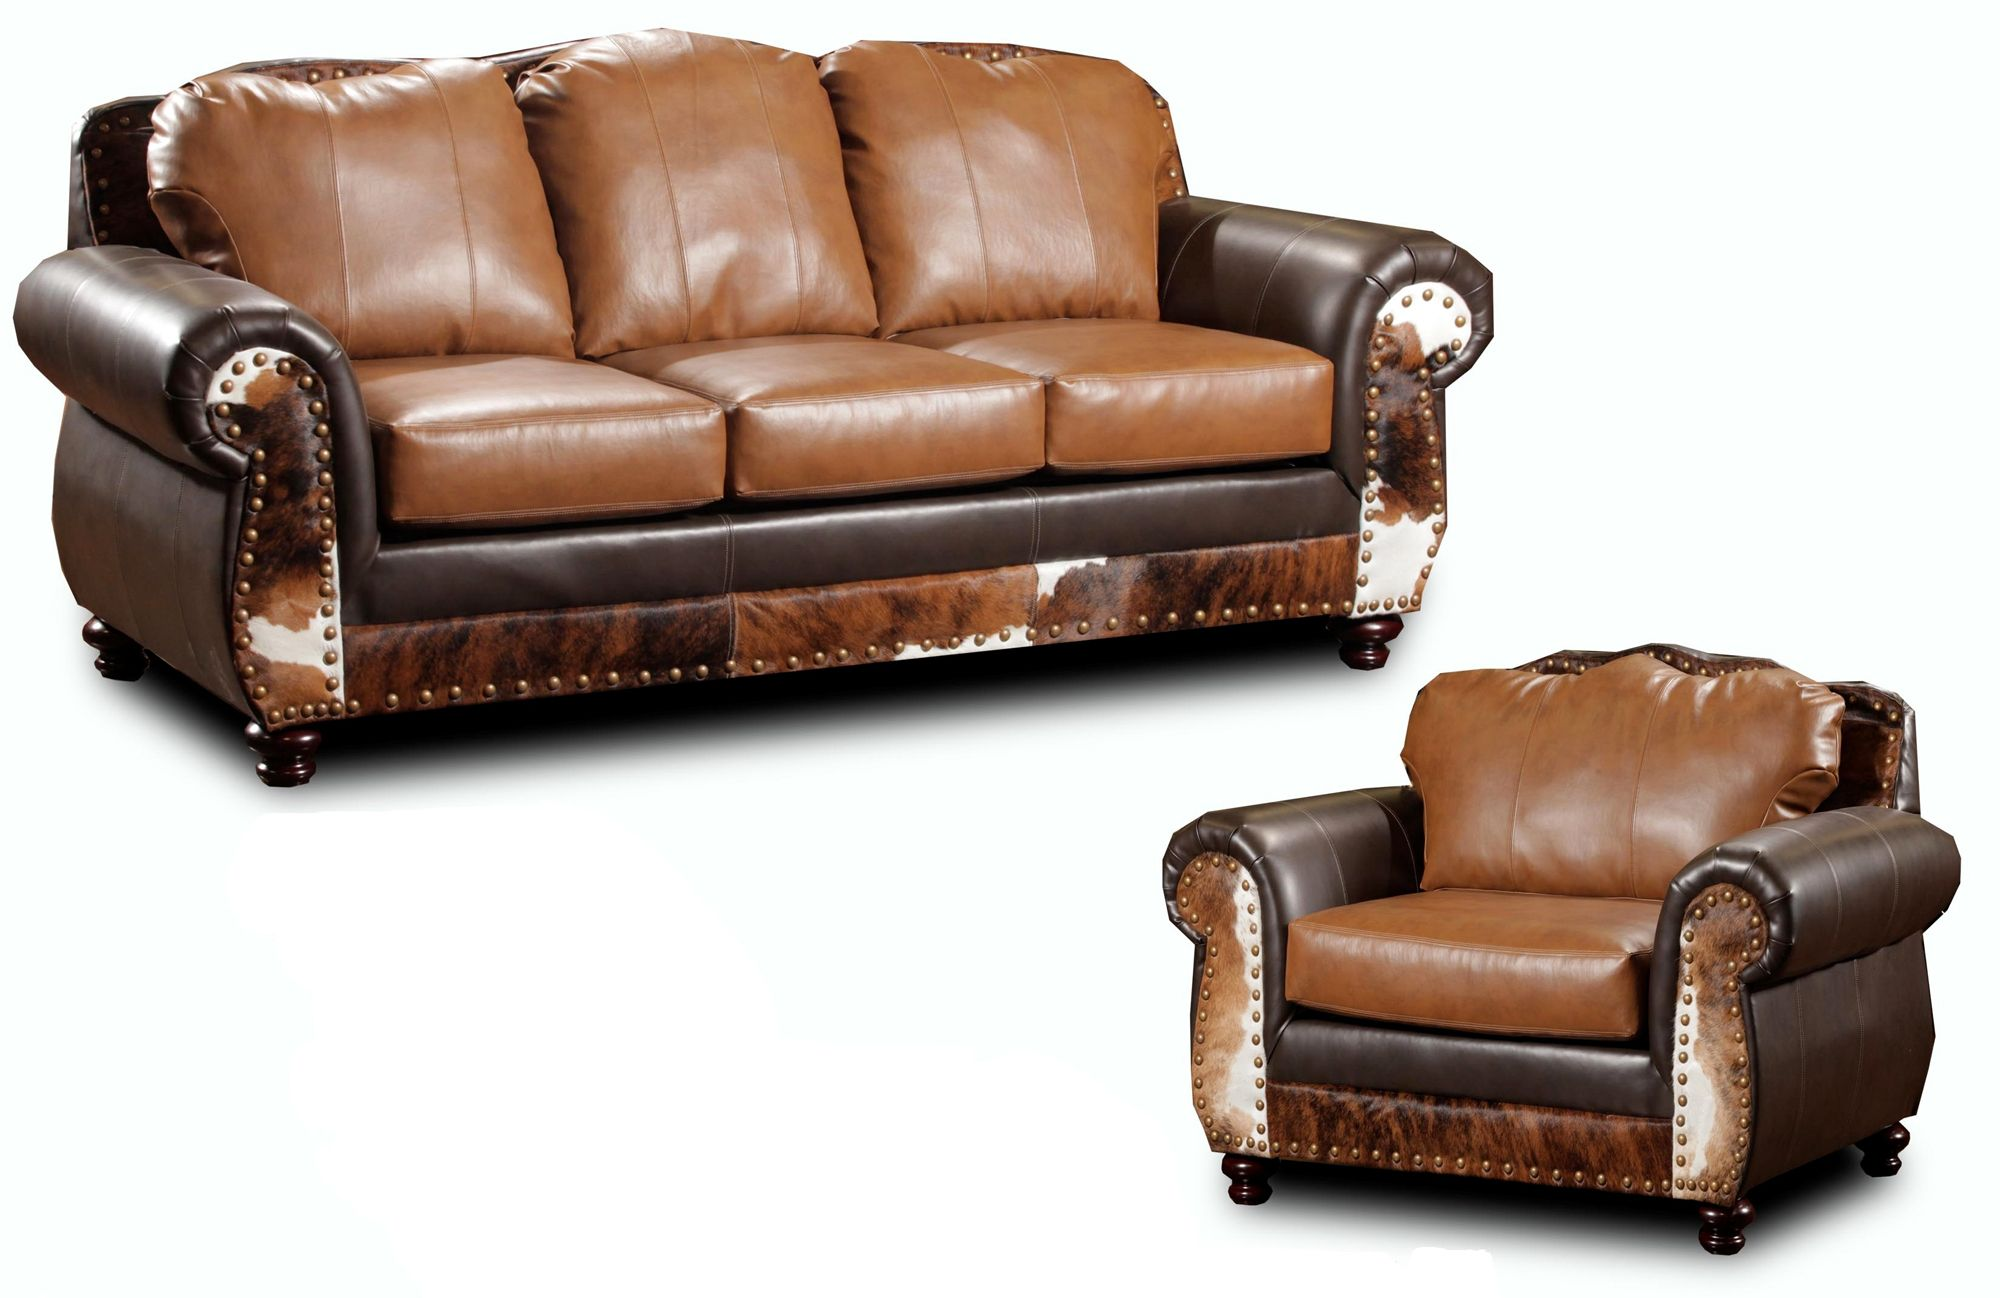 Rustic Leather Furniture Denver Rustic Lodge Leather Sofa And Chair 155869 155834 Verona Rustic Leather Sofa Leather Sofa Set Rustic Leather